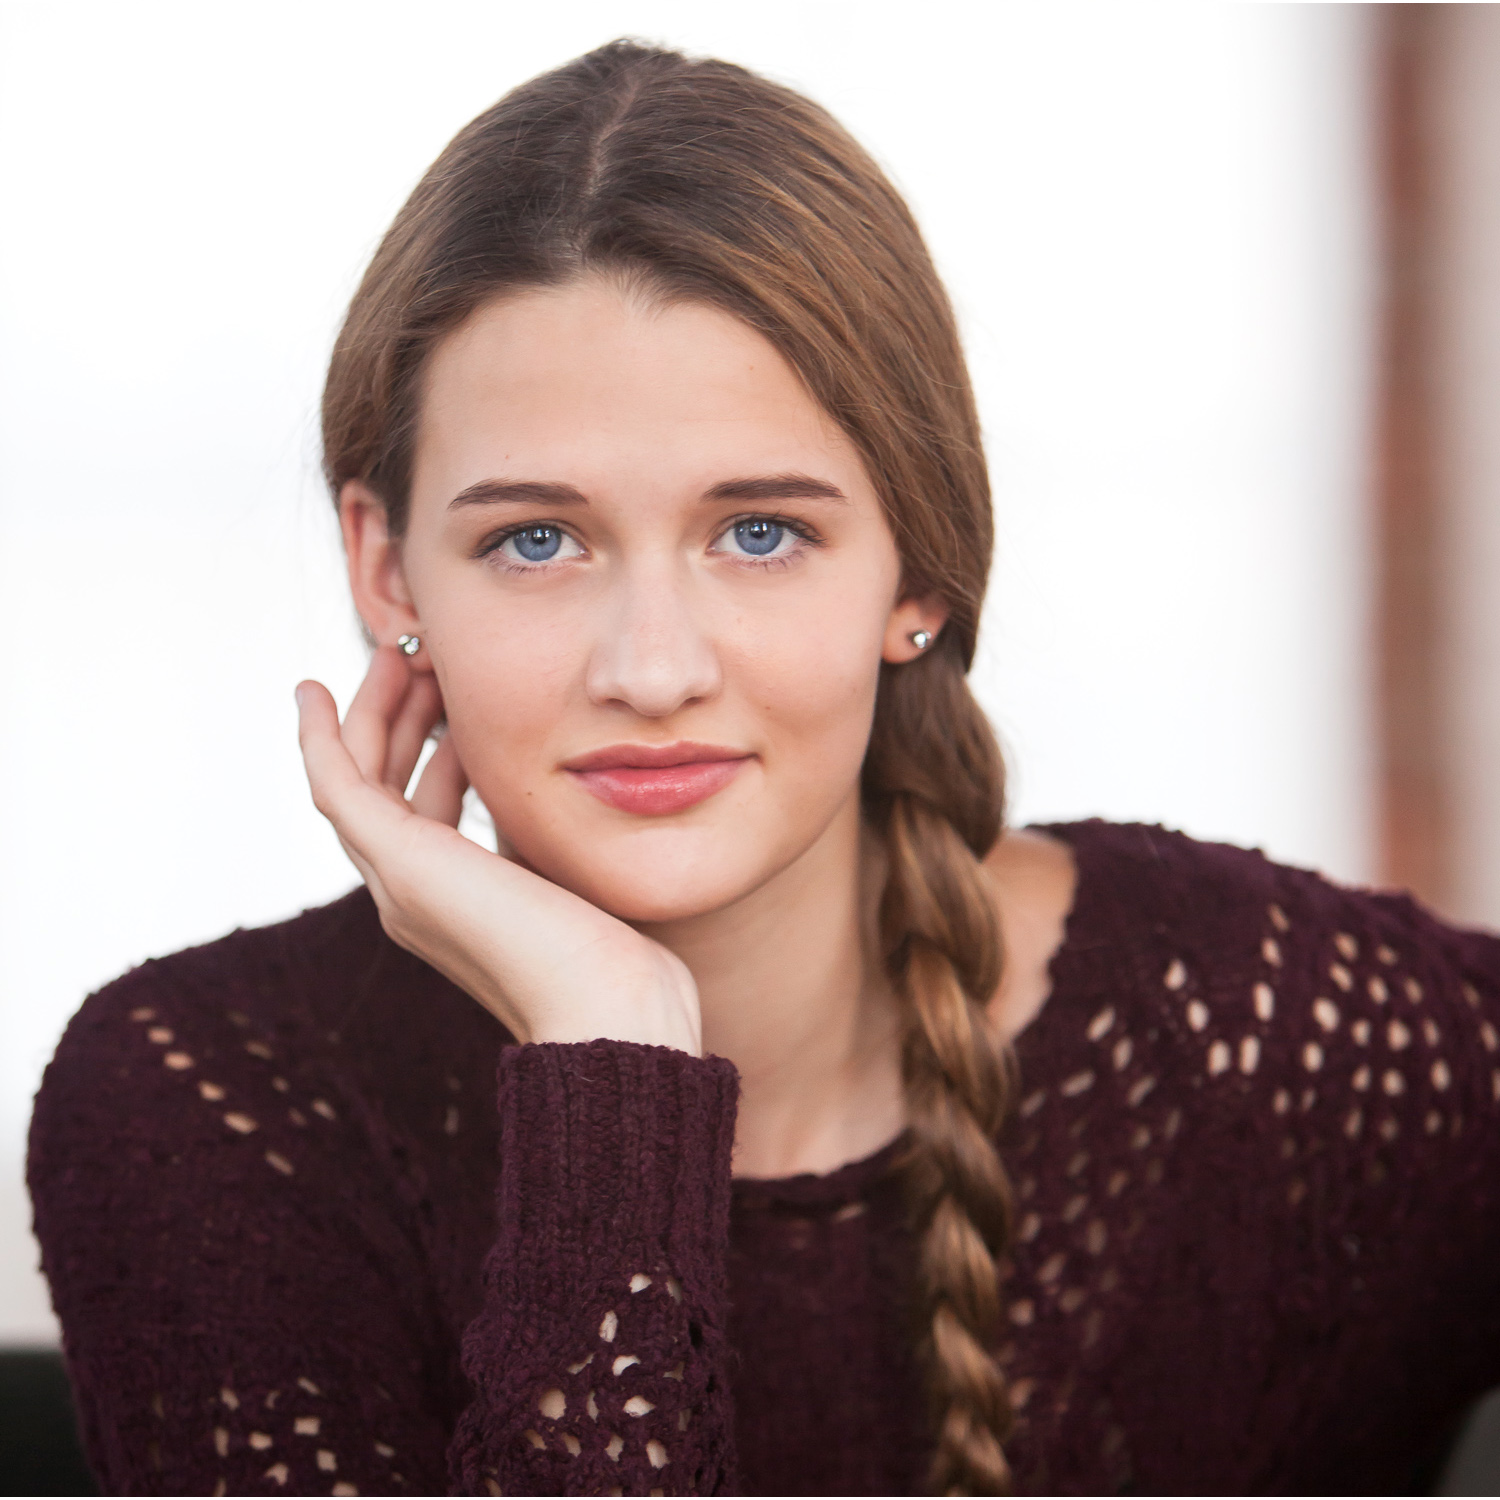 high school senior photo session at urban studio in denver | photographer jennifer koskinen | merritt portrait studio